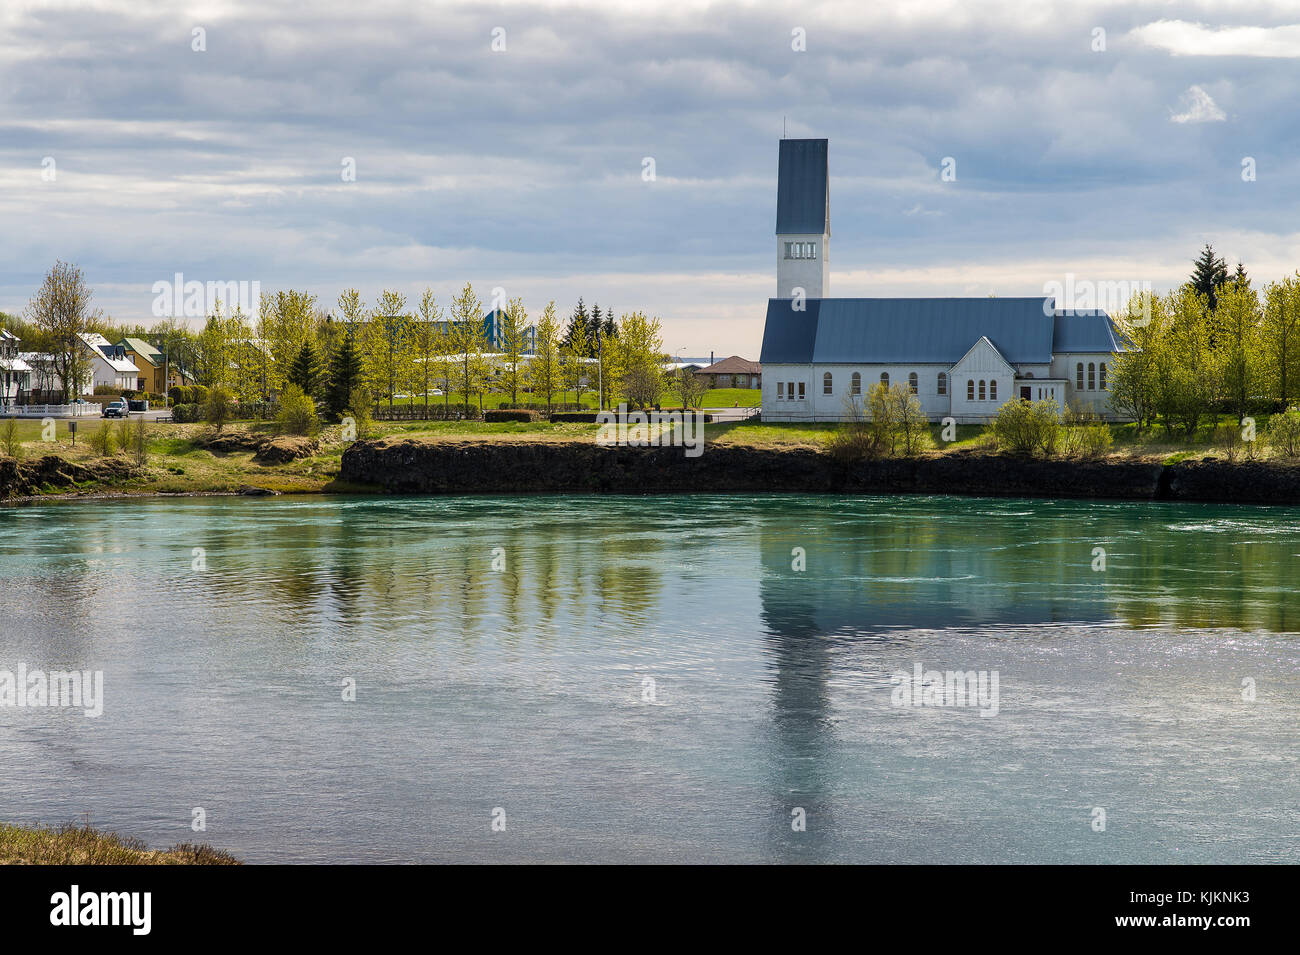 Église de Selfoss. L'Islande. Photo Stock